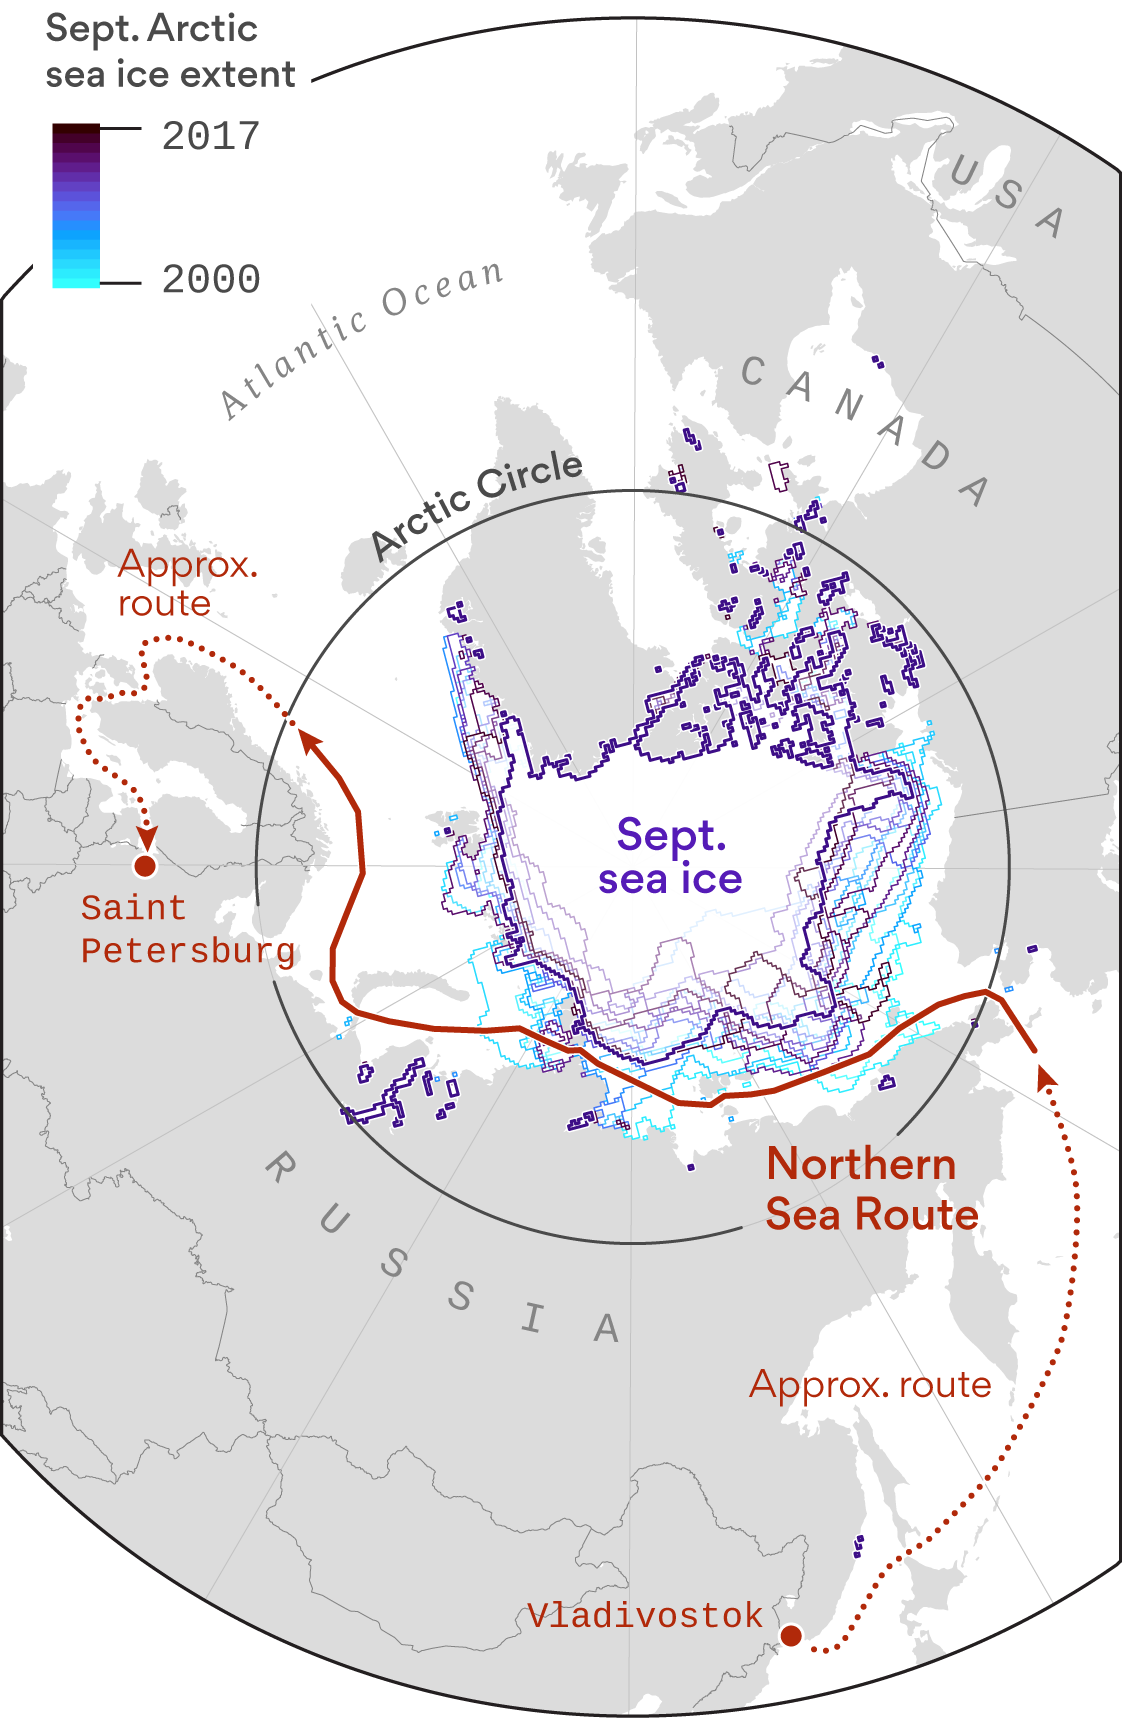 Climate change is opening a new era in Arctic shipping